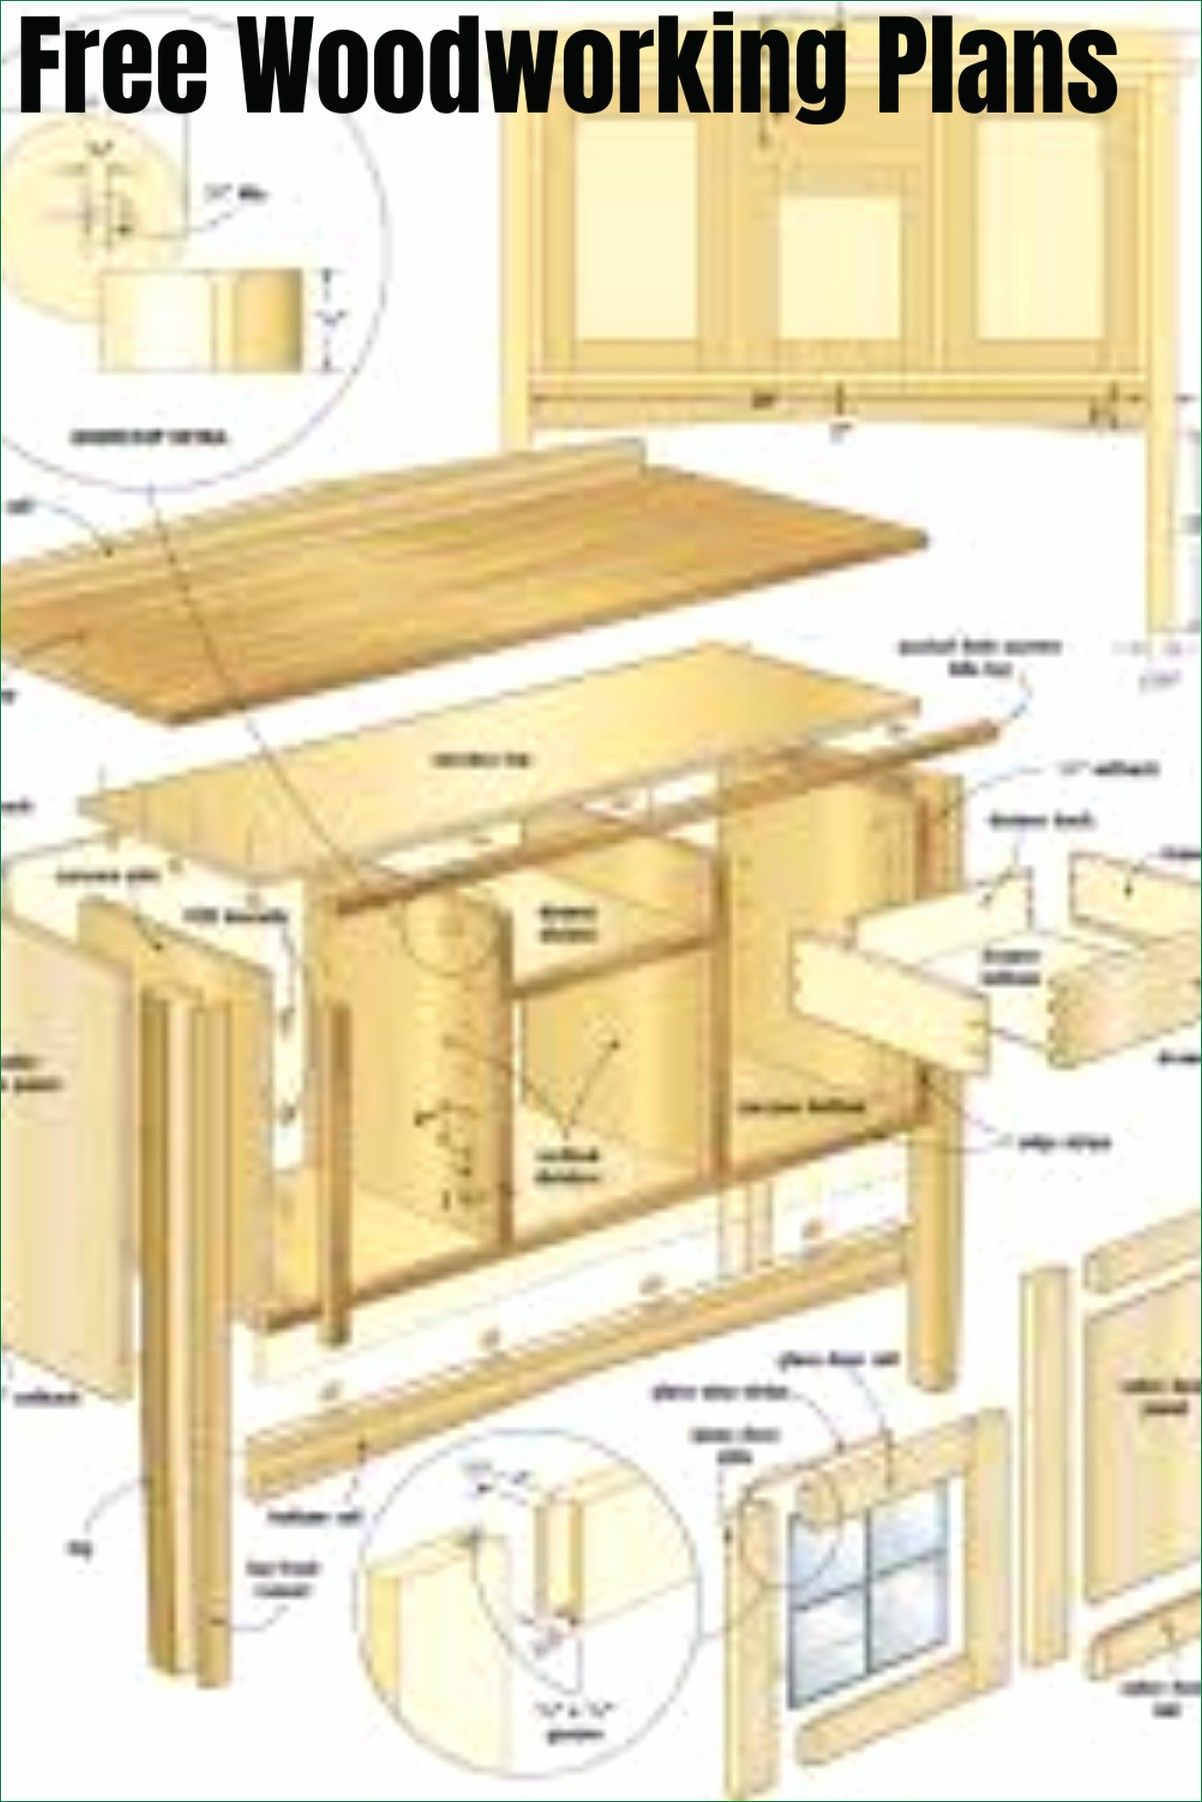 Free Woodworking Plans Free Woodworking Plans Looking For Woodworking Plans Its In 2020 Woodworking Furniture Plans Sideboard Woodworking Plans Woodworking Plans Diy